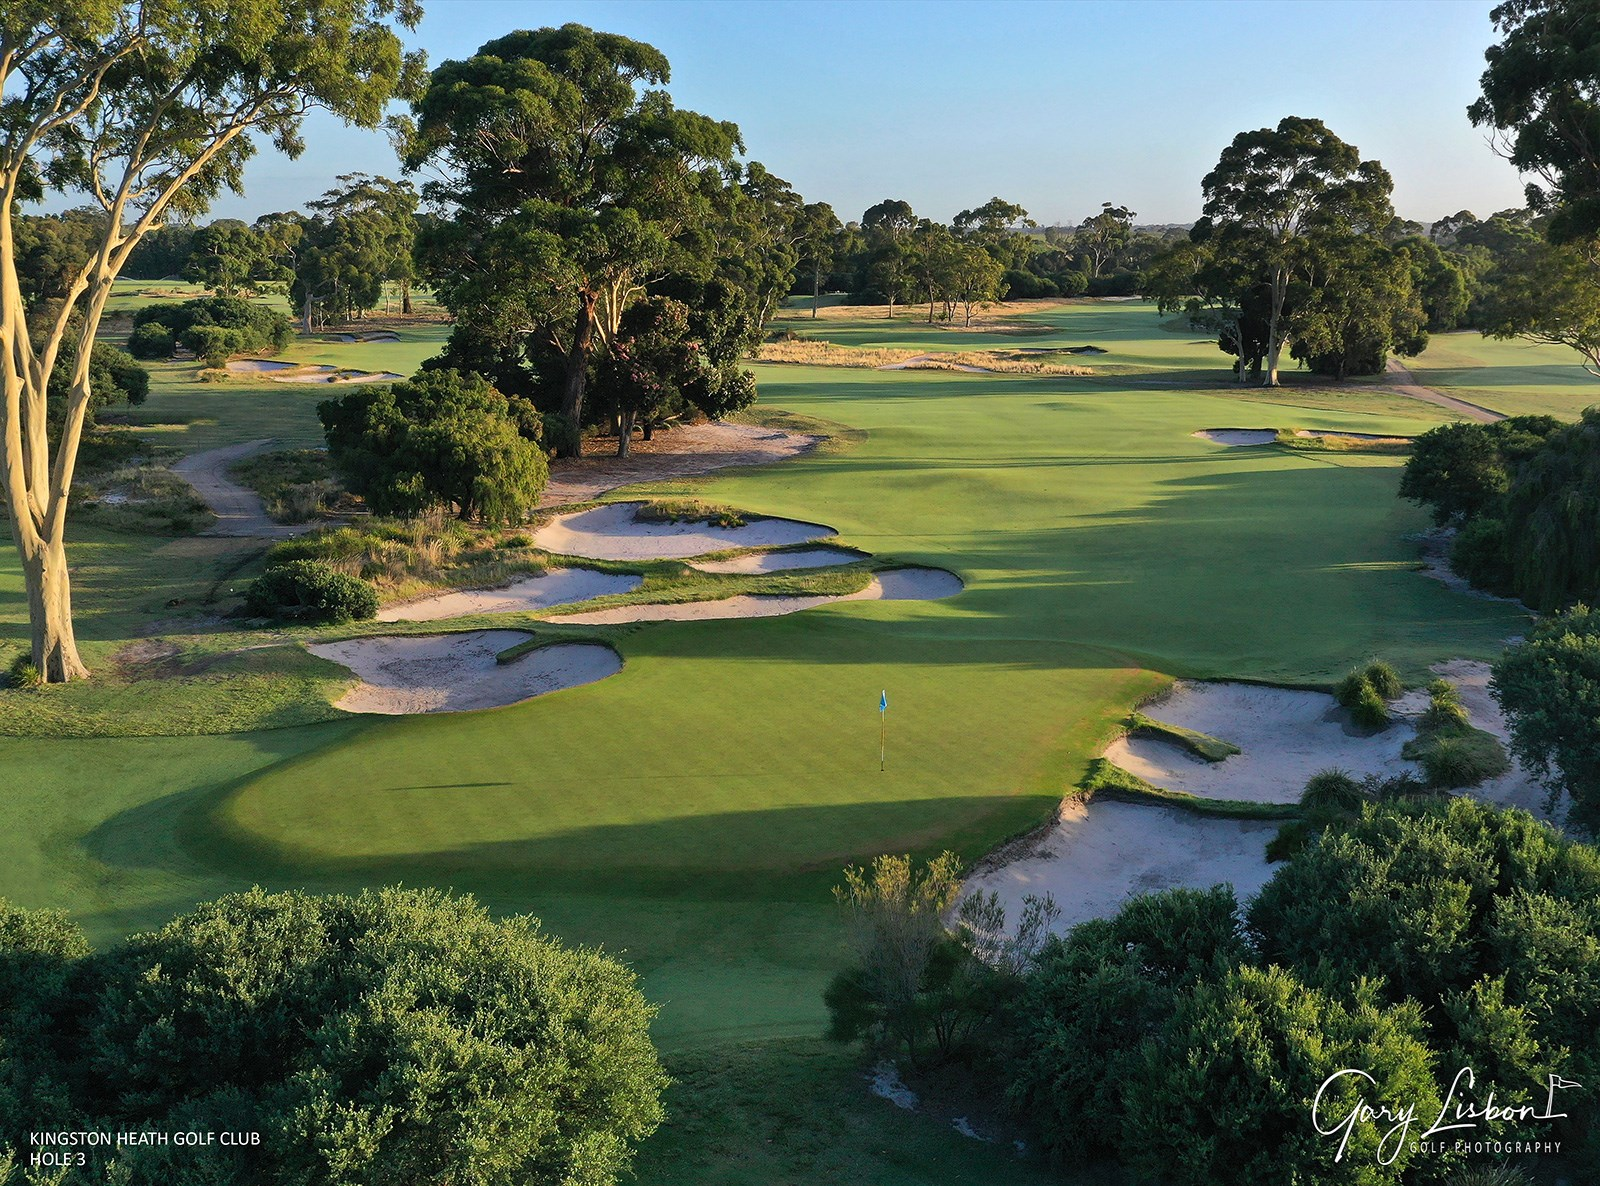 Kingston Heath Golf Club Hole 3